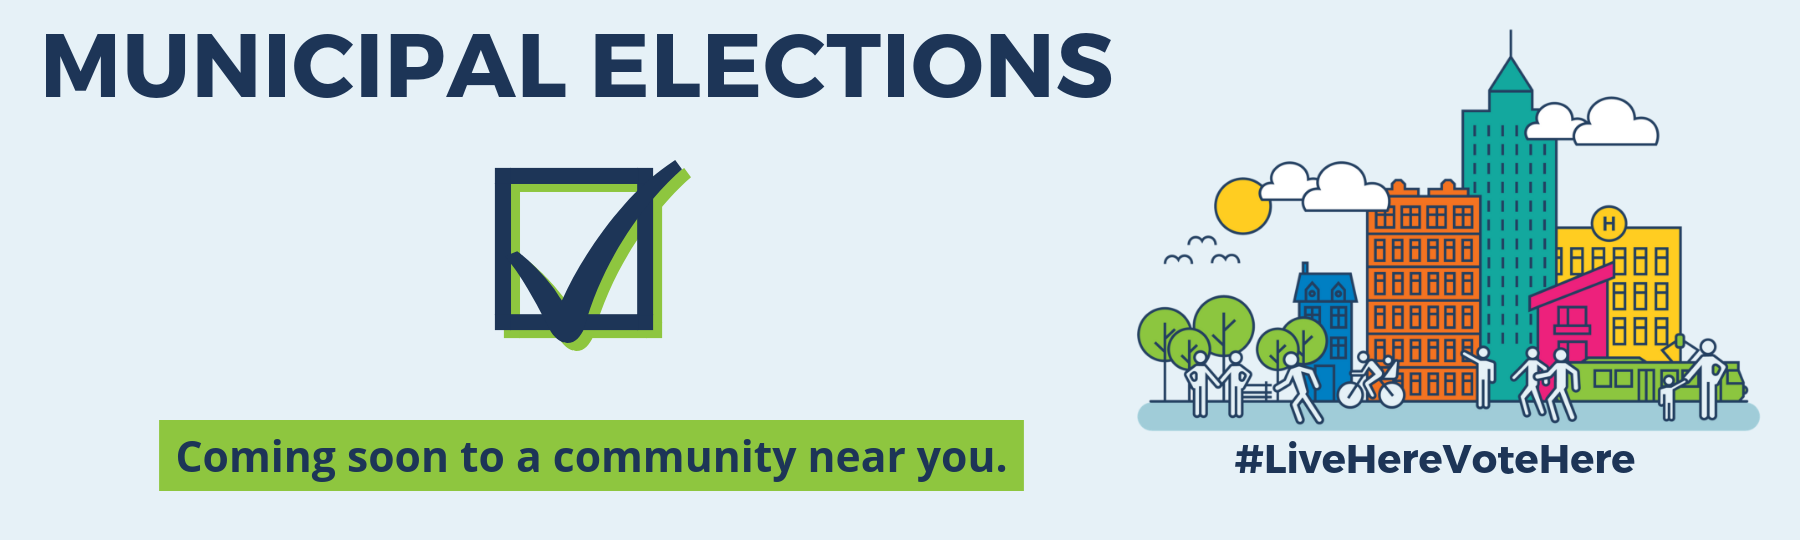 Municipal elections: Coming soon to a community near you #LiveHereVoteHere